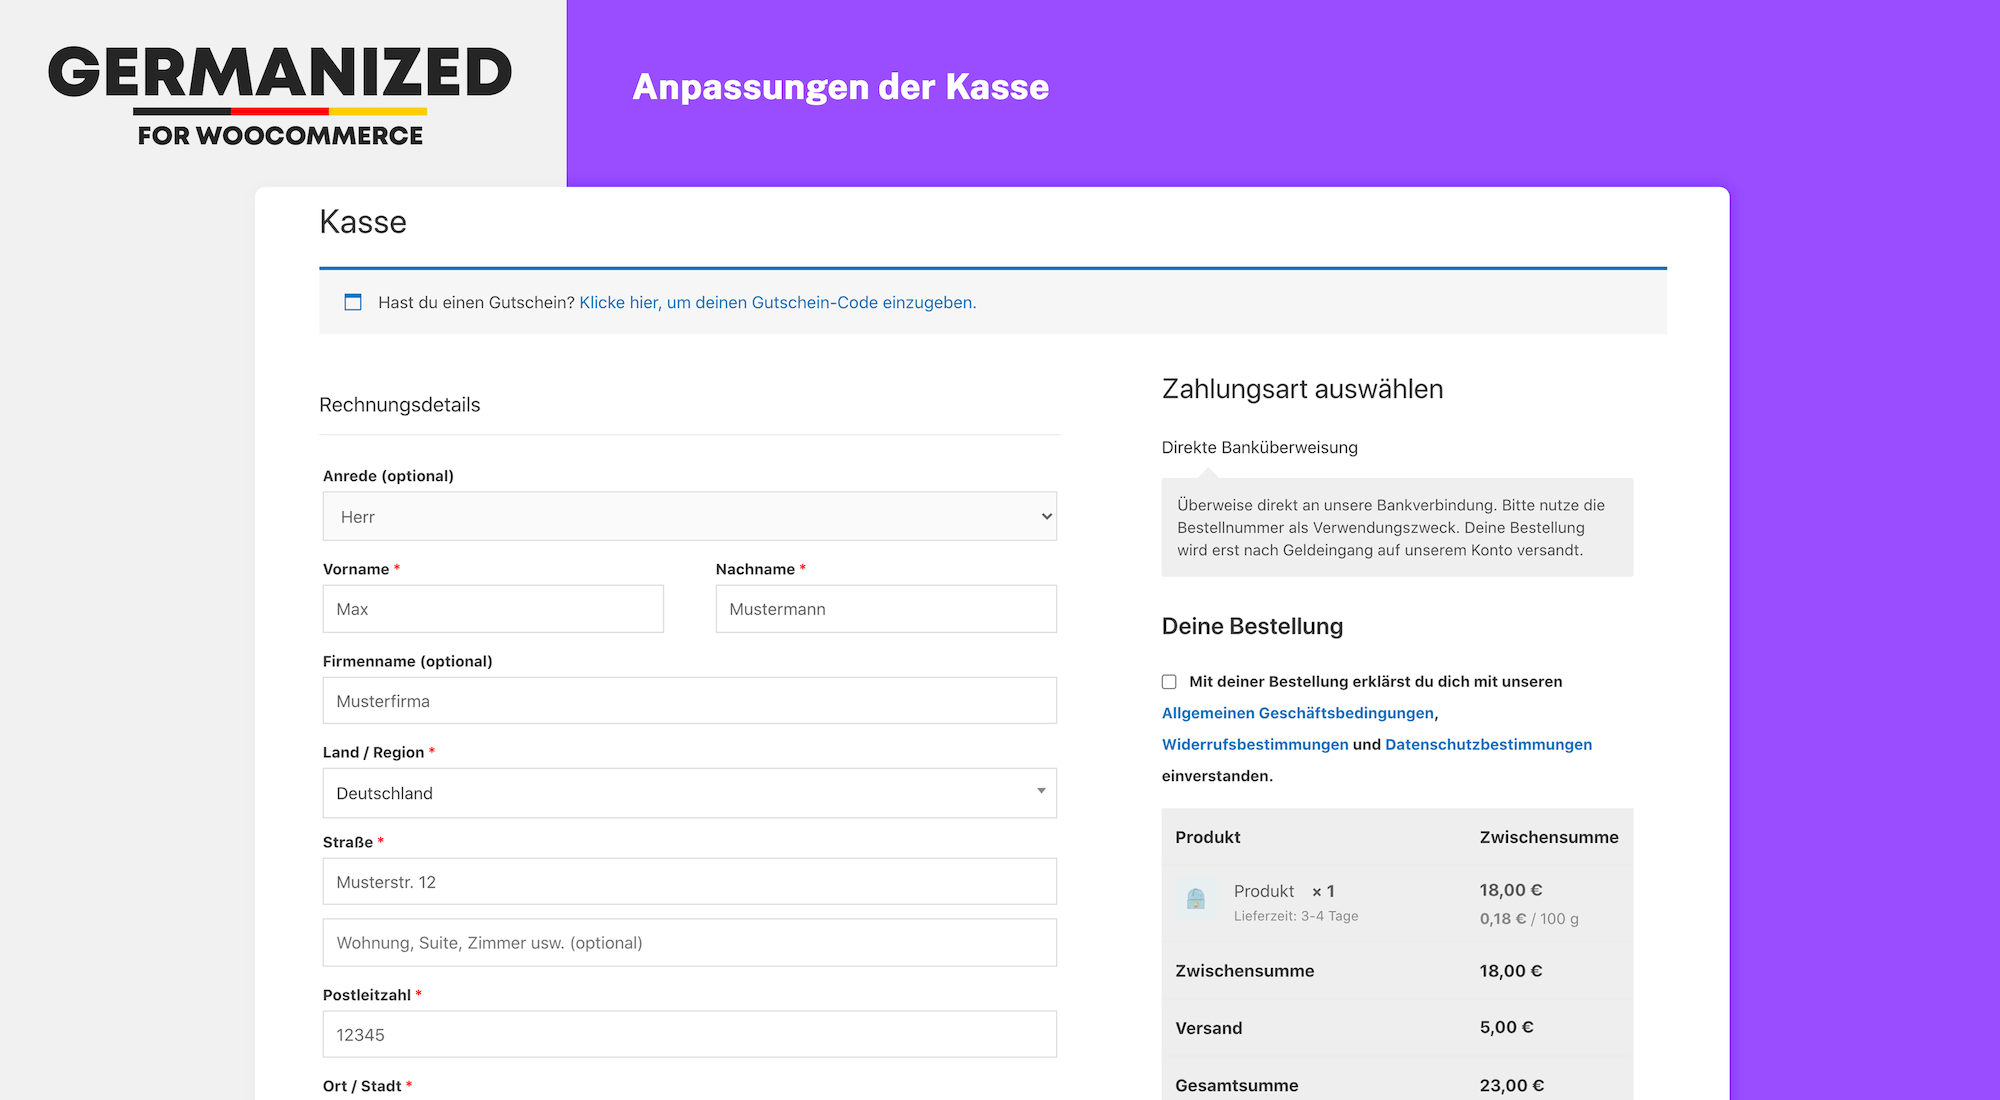 Some of WooCommerce Germanized checkout adjustments to comply with the button solution